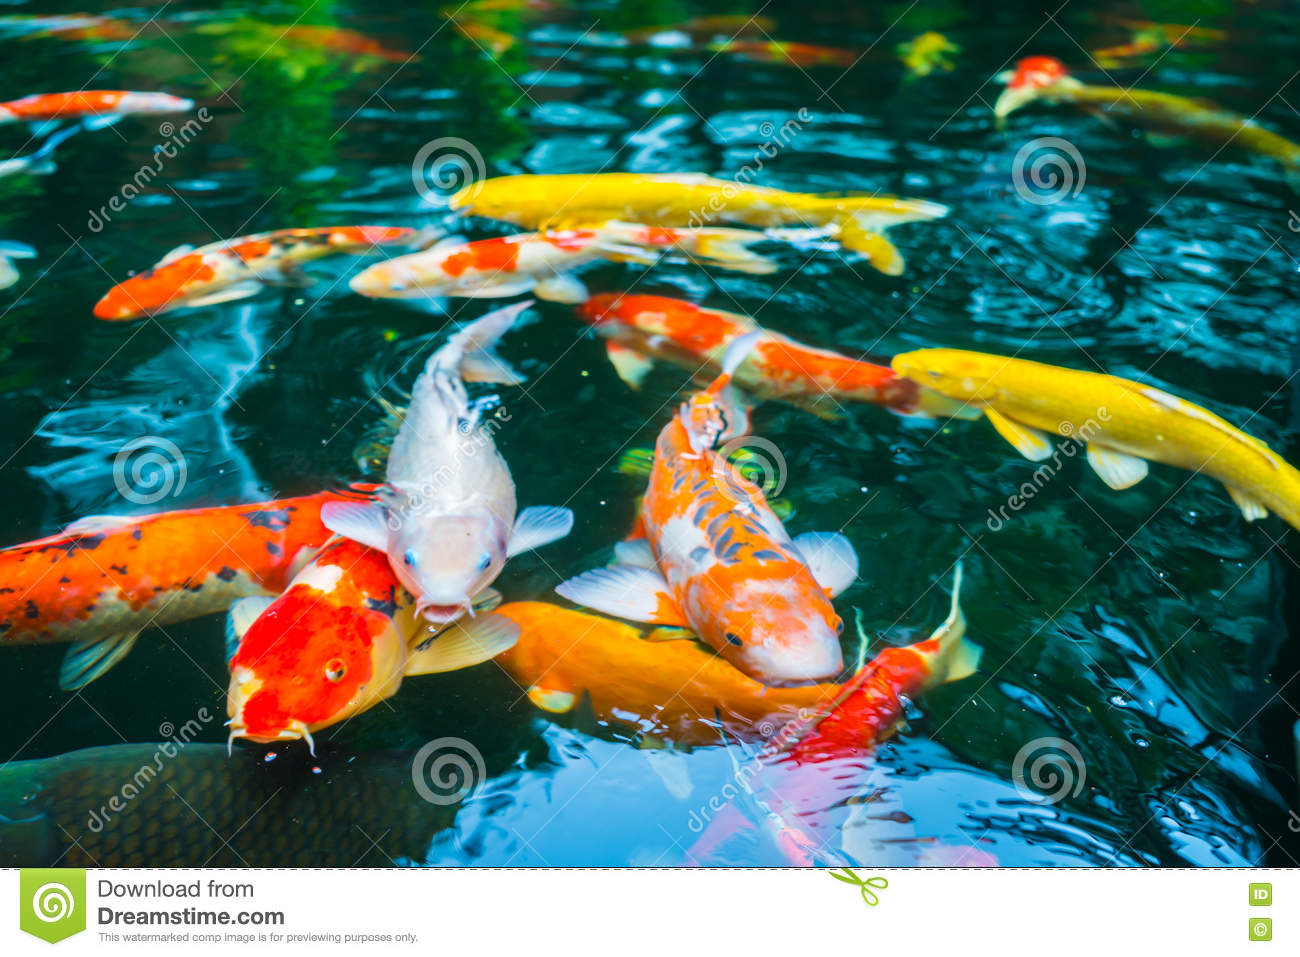 Colorful koi fish swimming in water stock image for Dream of fish swimming